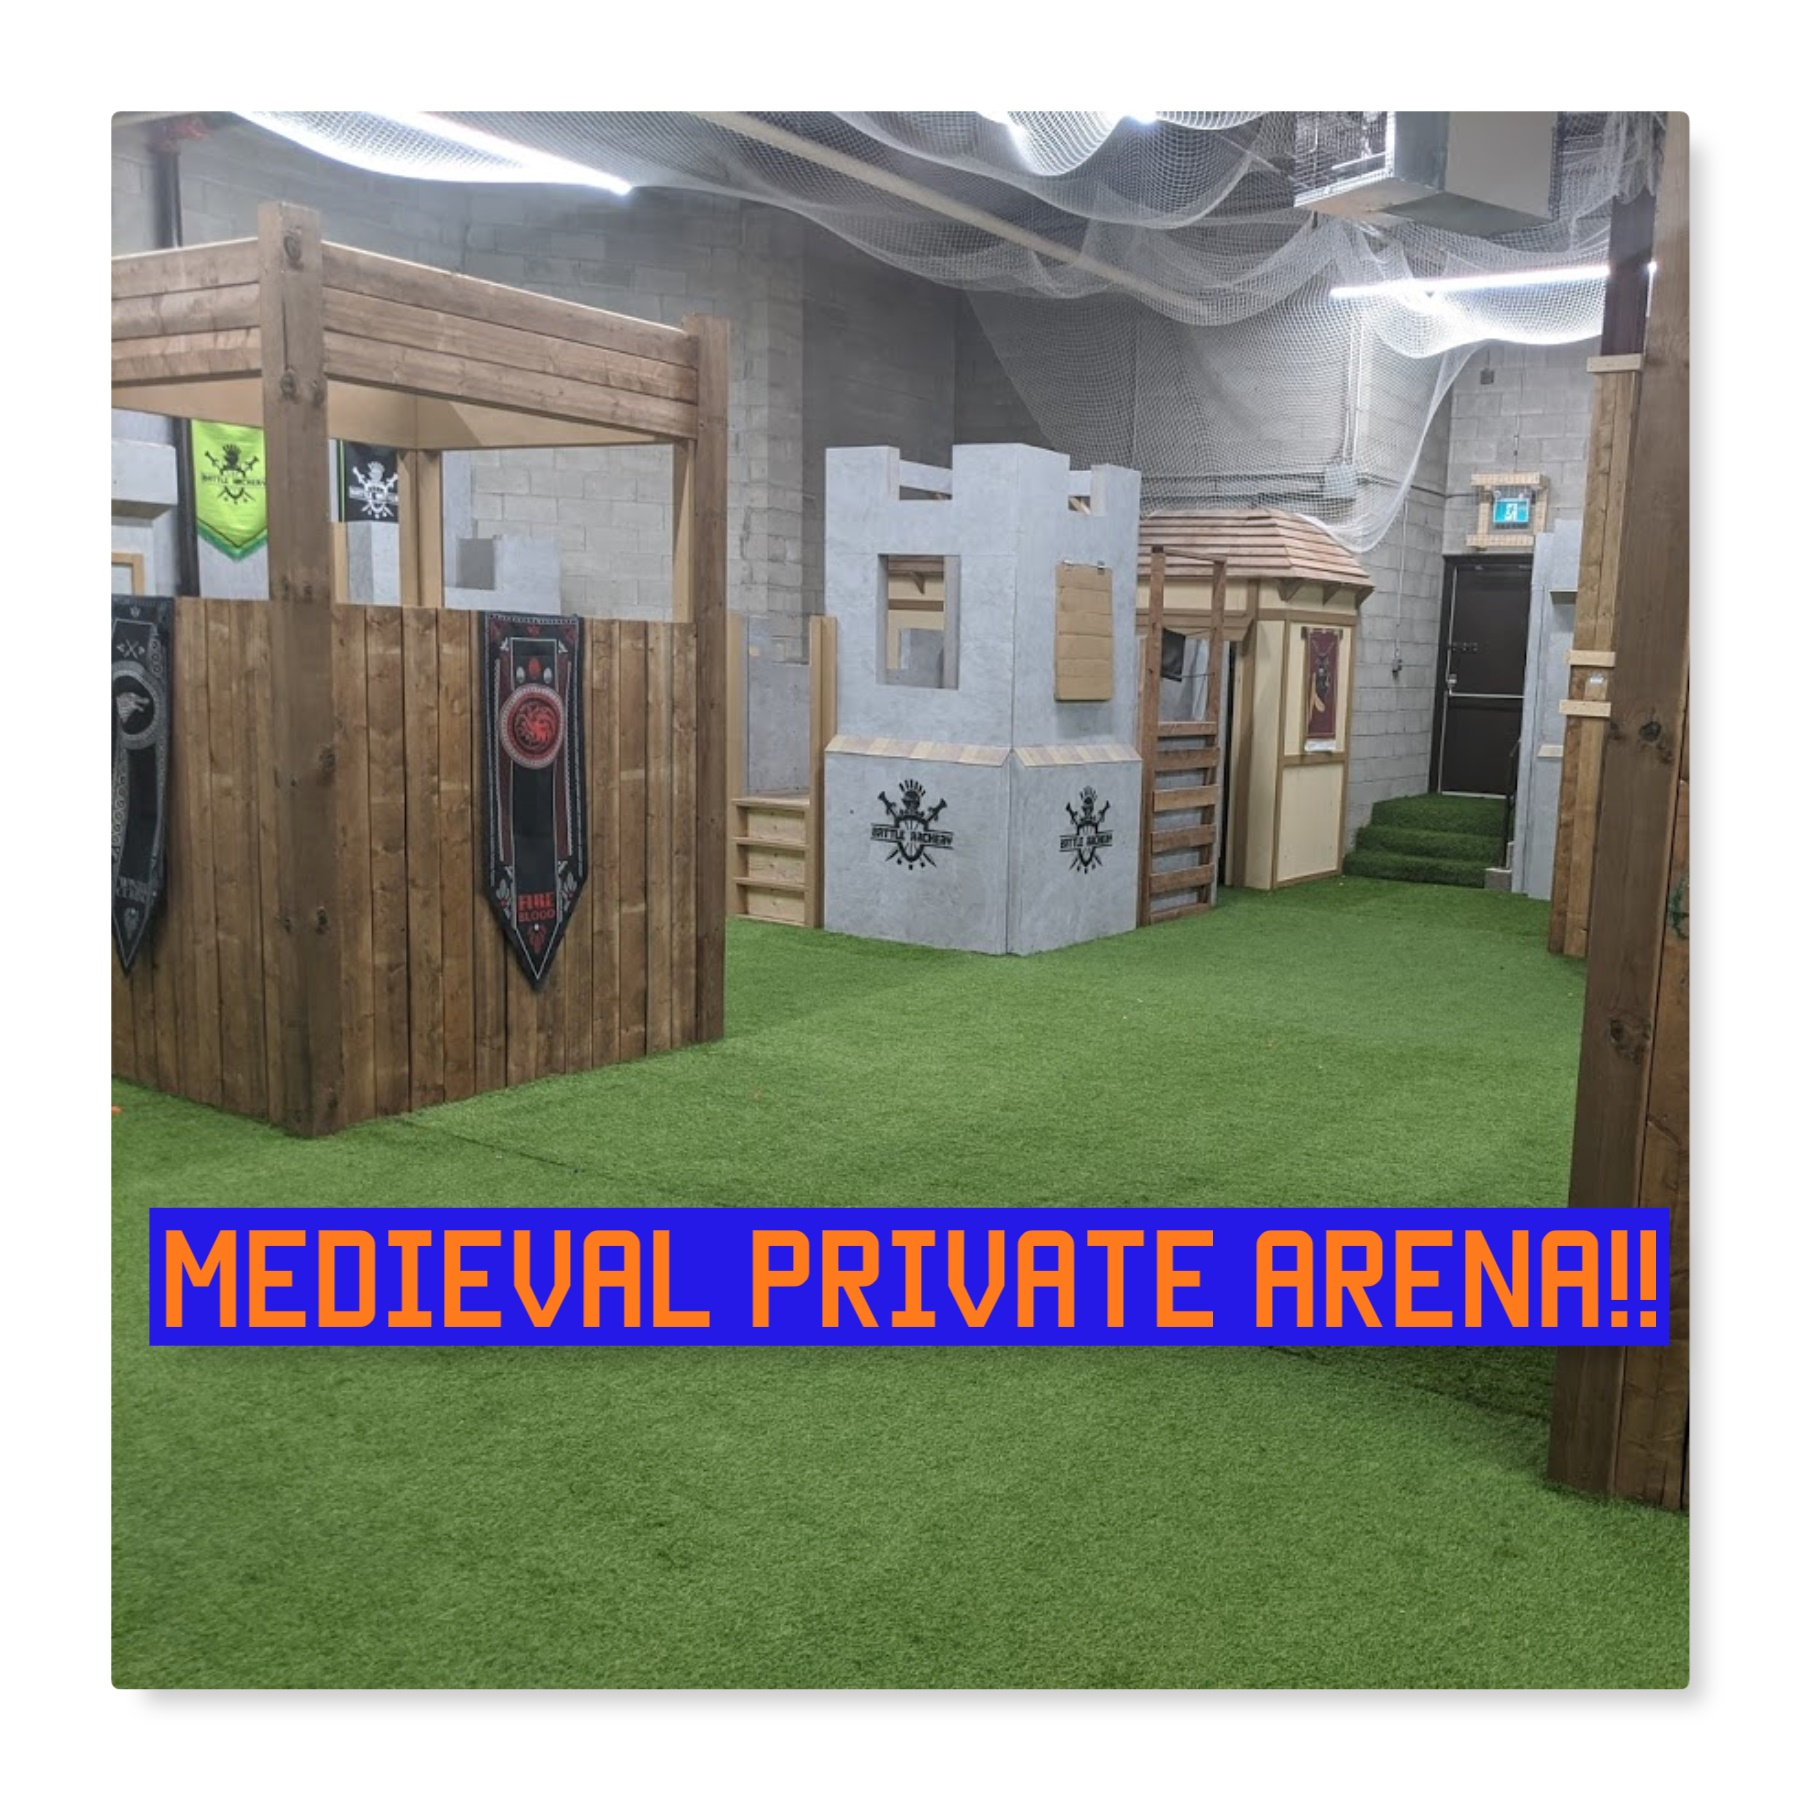 photo of battle archery private nerf arena with castle towers and turf